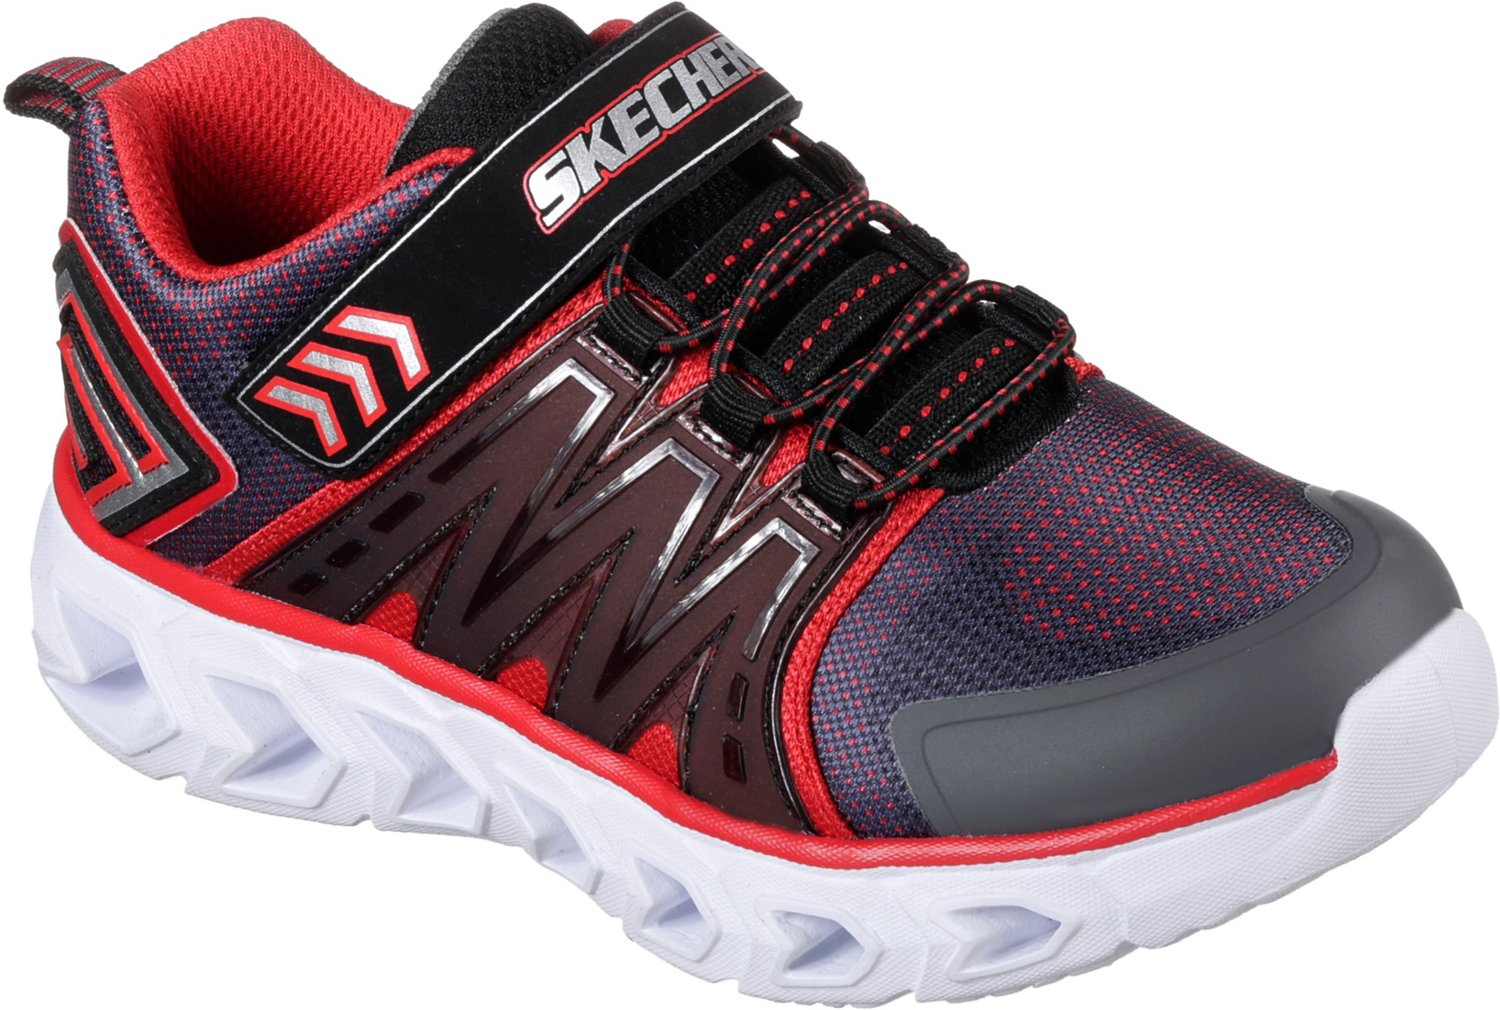 SKECHERS Boys' S Lights Hypo-Flash 2.0 Shoes - view number 3